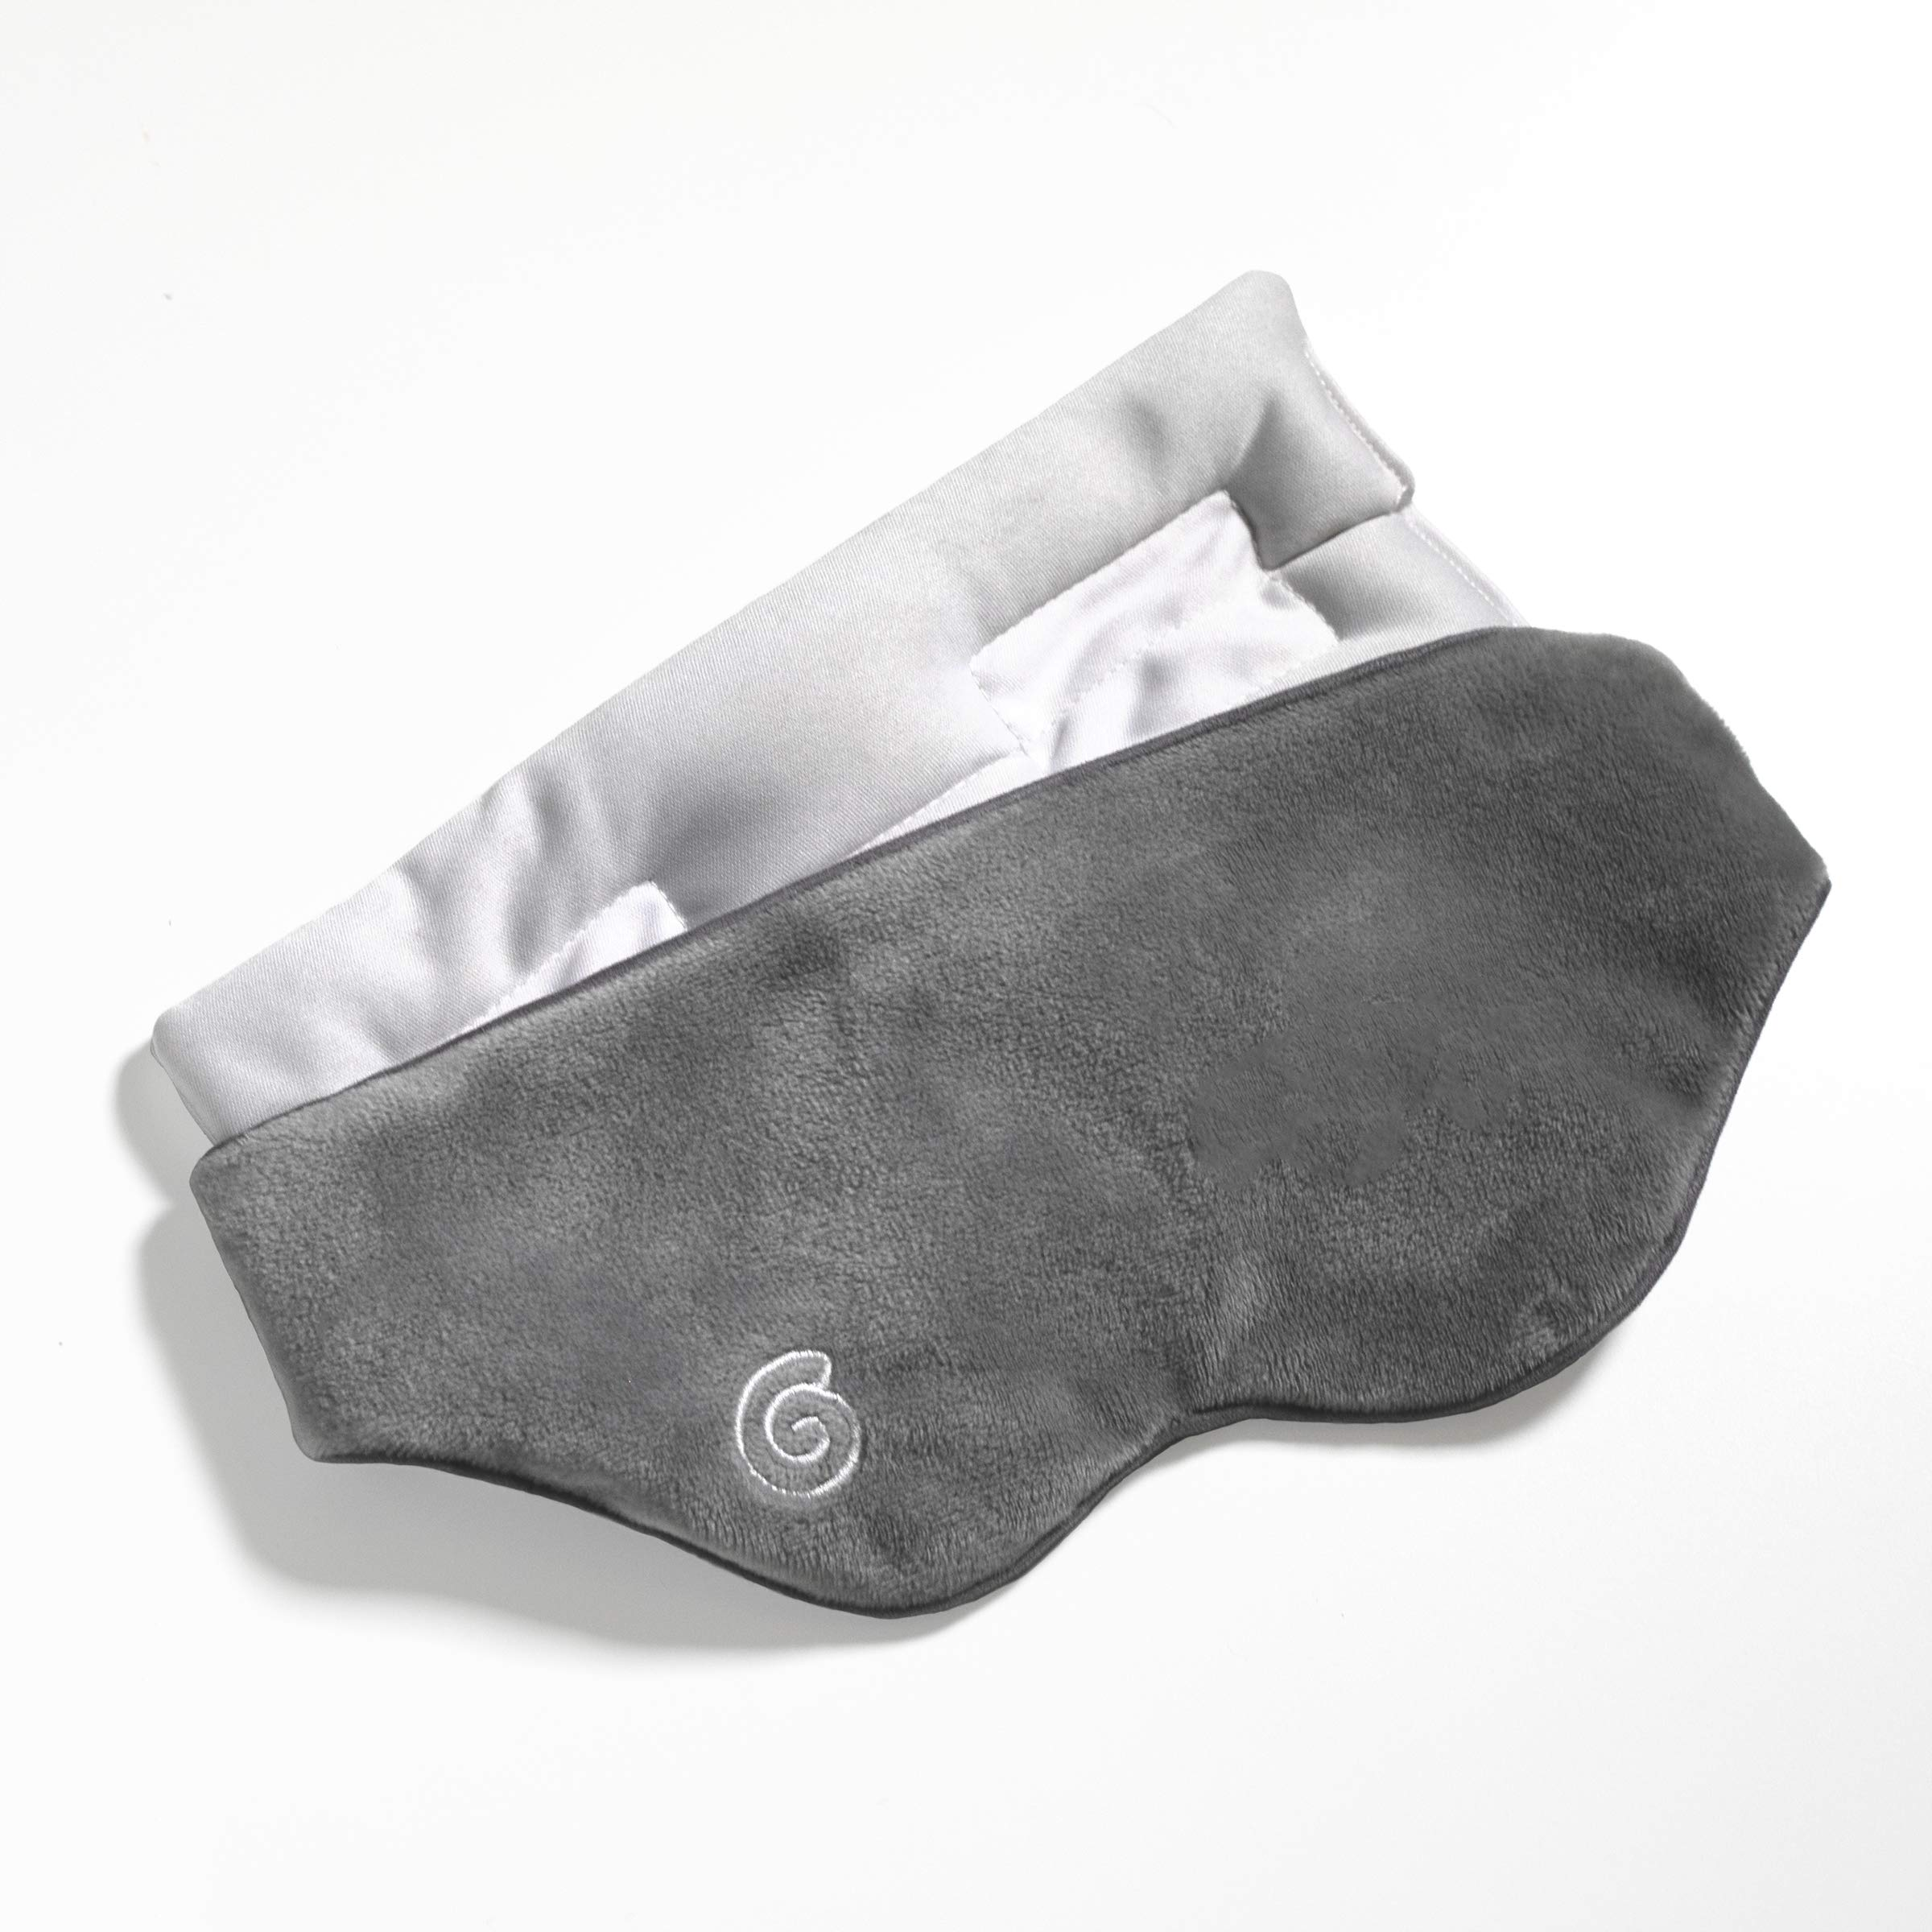 Gravity Weighted Sleep Mask, Made by the Creator of the Gravity Blanket, For Sleep and Stress, 1 pound, 1 CT by GRAVITY